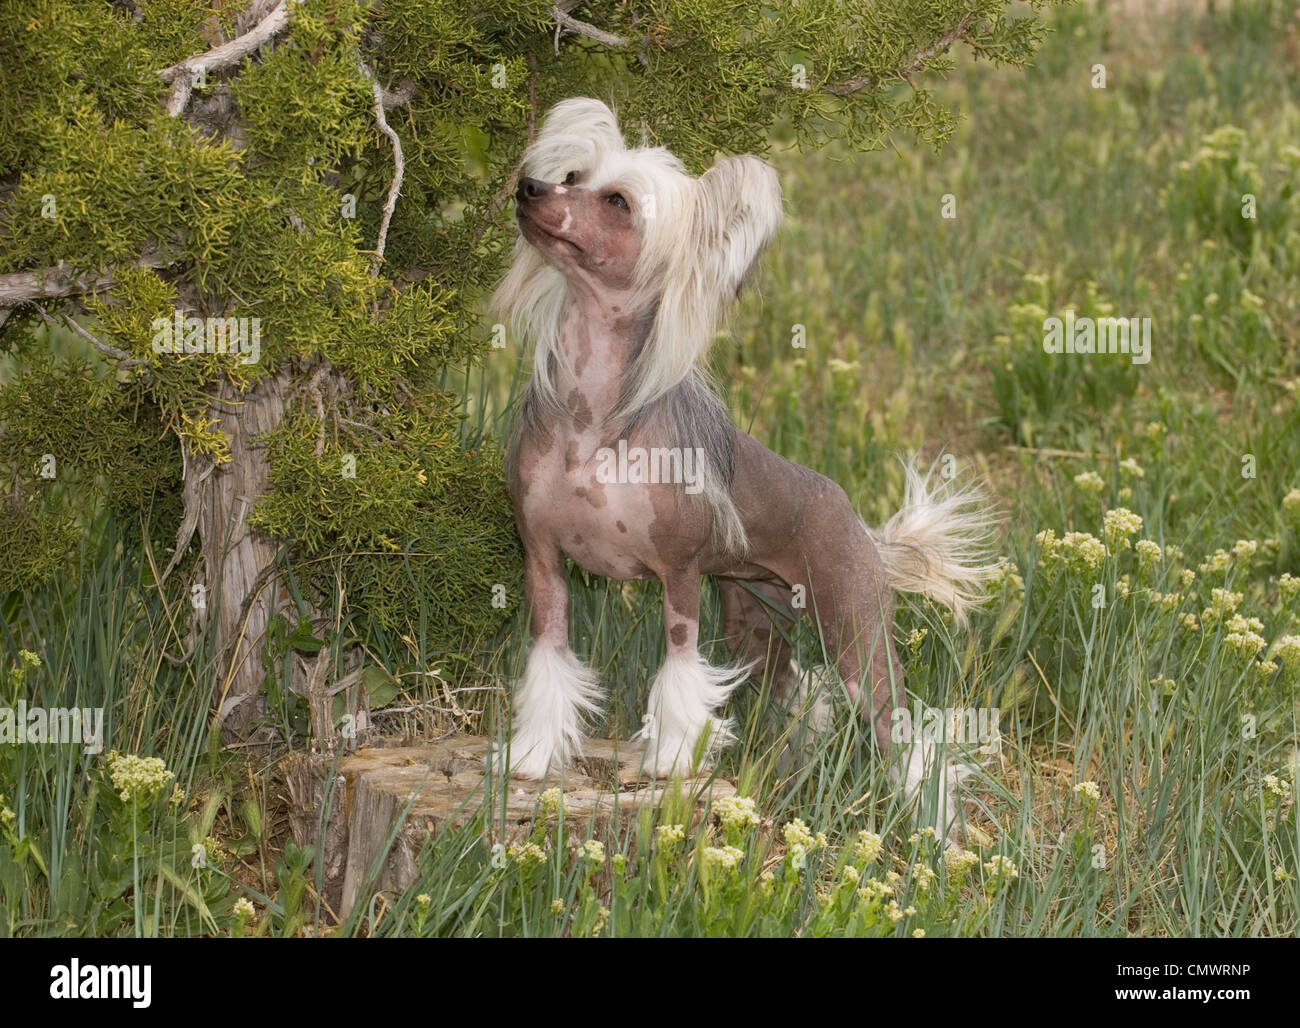 Chinese Crested standing on stump - Stock Image